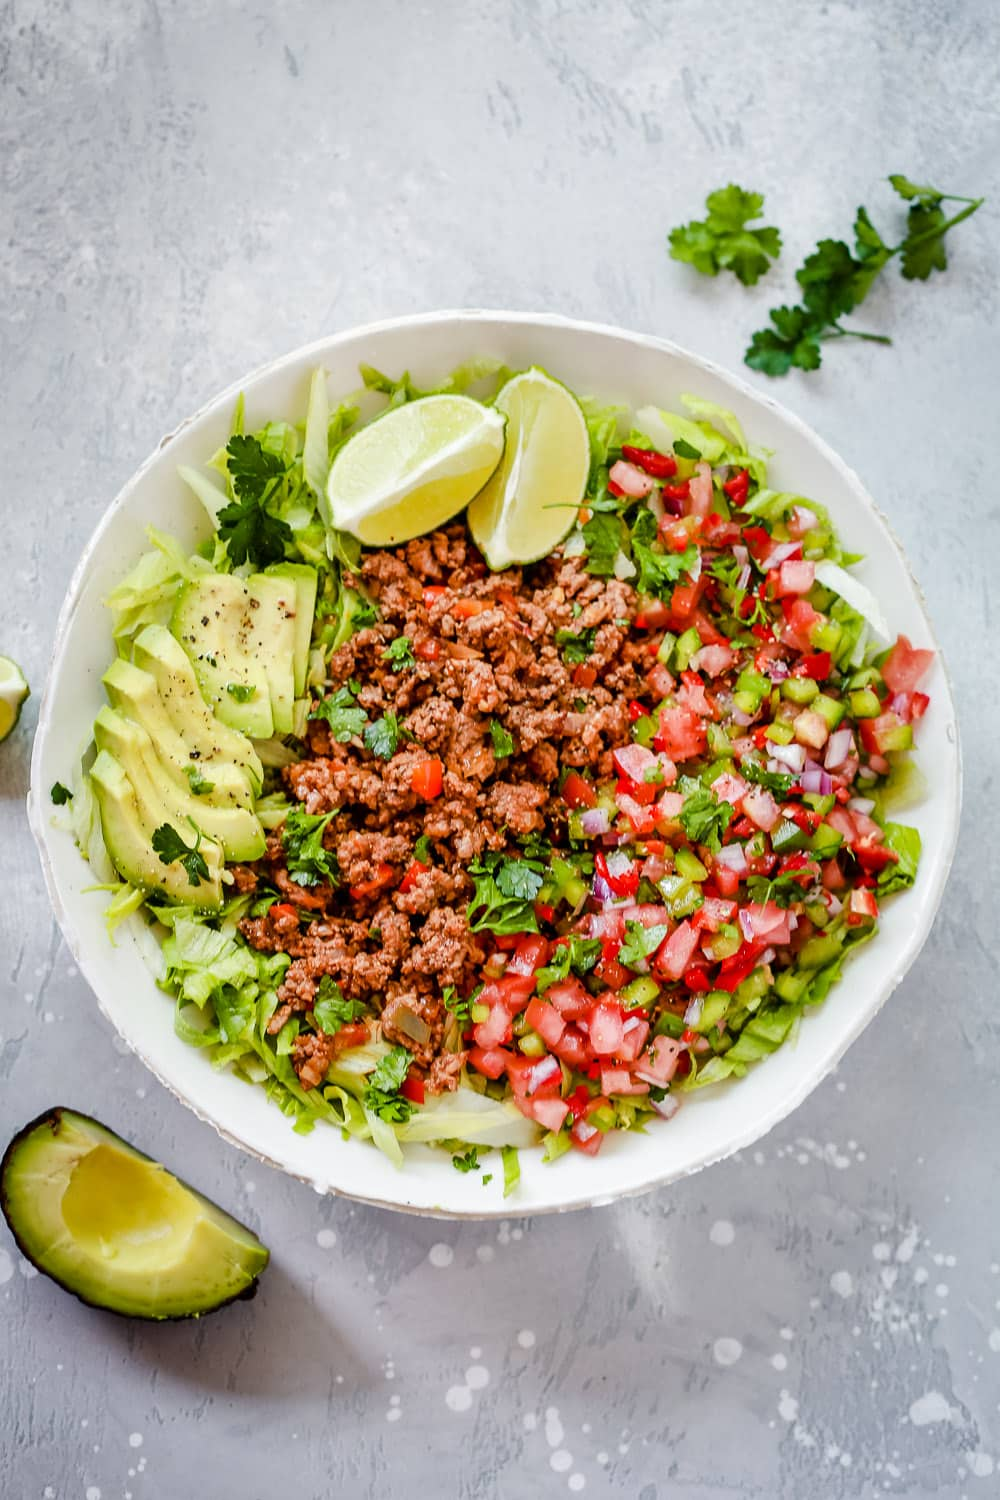 Ground Beef Taco Salad with avocado slices and salsa